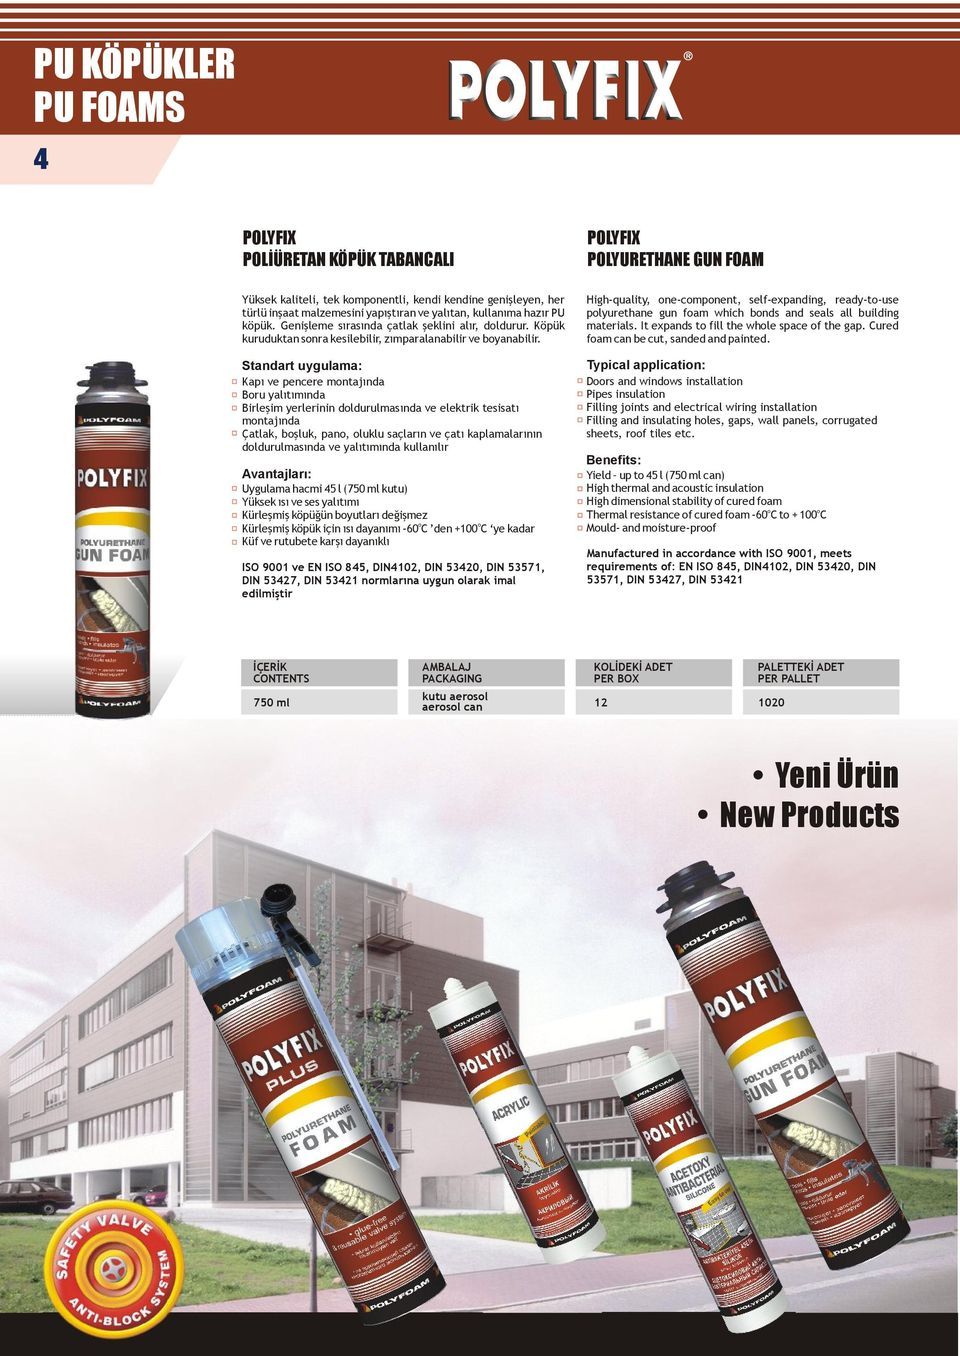 High-quality, ne-cmpnent, self-expanding, ready-t-use plyurethane gun fam which bnds and seals all building materials. It expands t fill the whle space f the gap.